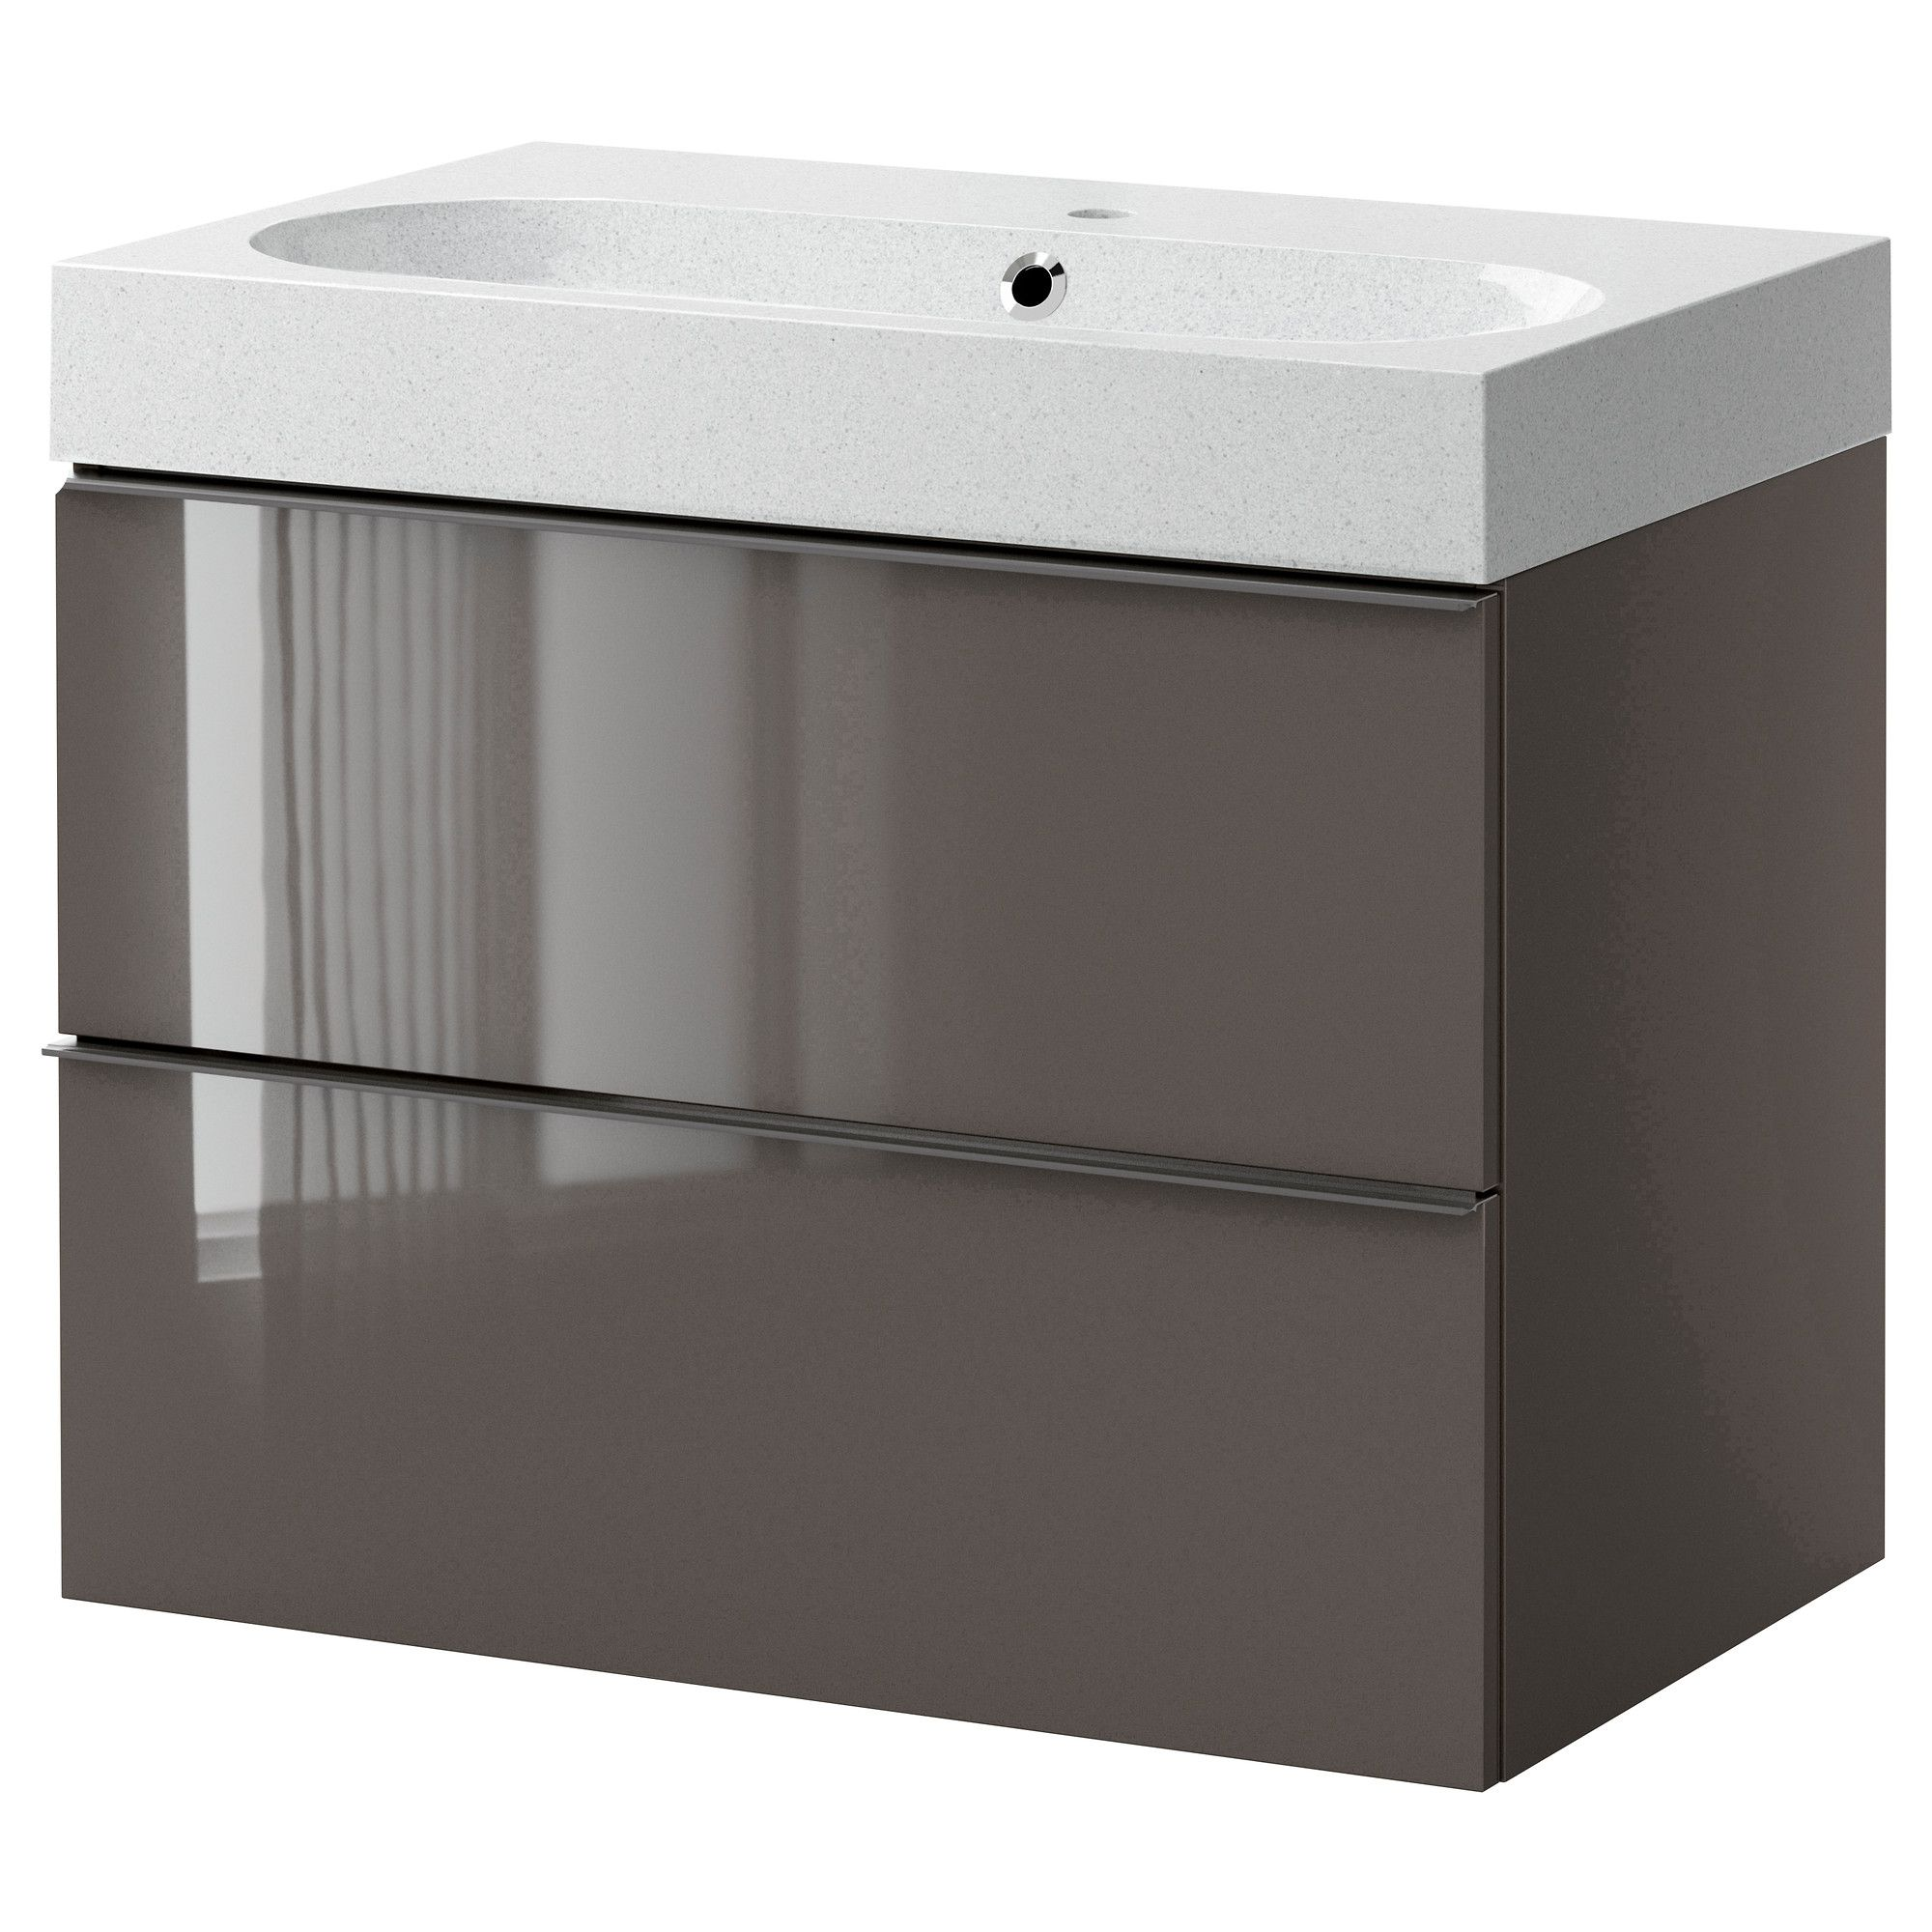 Bathroom sink cabinets ikea - Godmorgon Br Viken Sink Cabinet With 2 Drawers High Gloss Gray Light Gray Airstream Bathroomikea